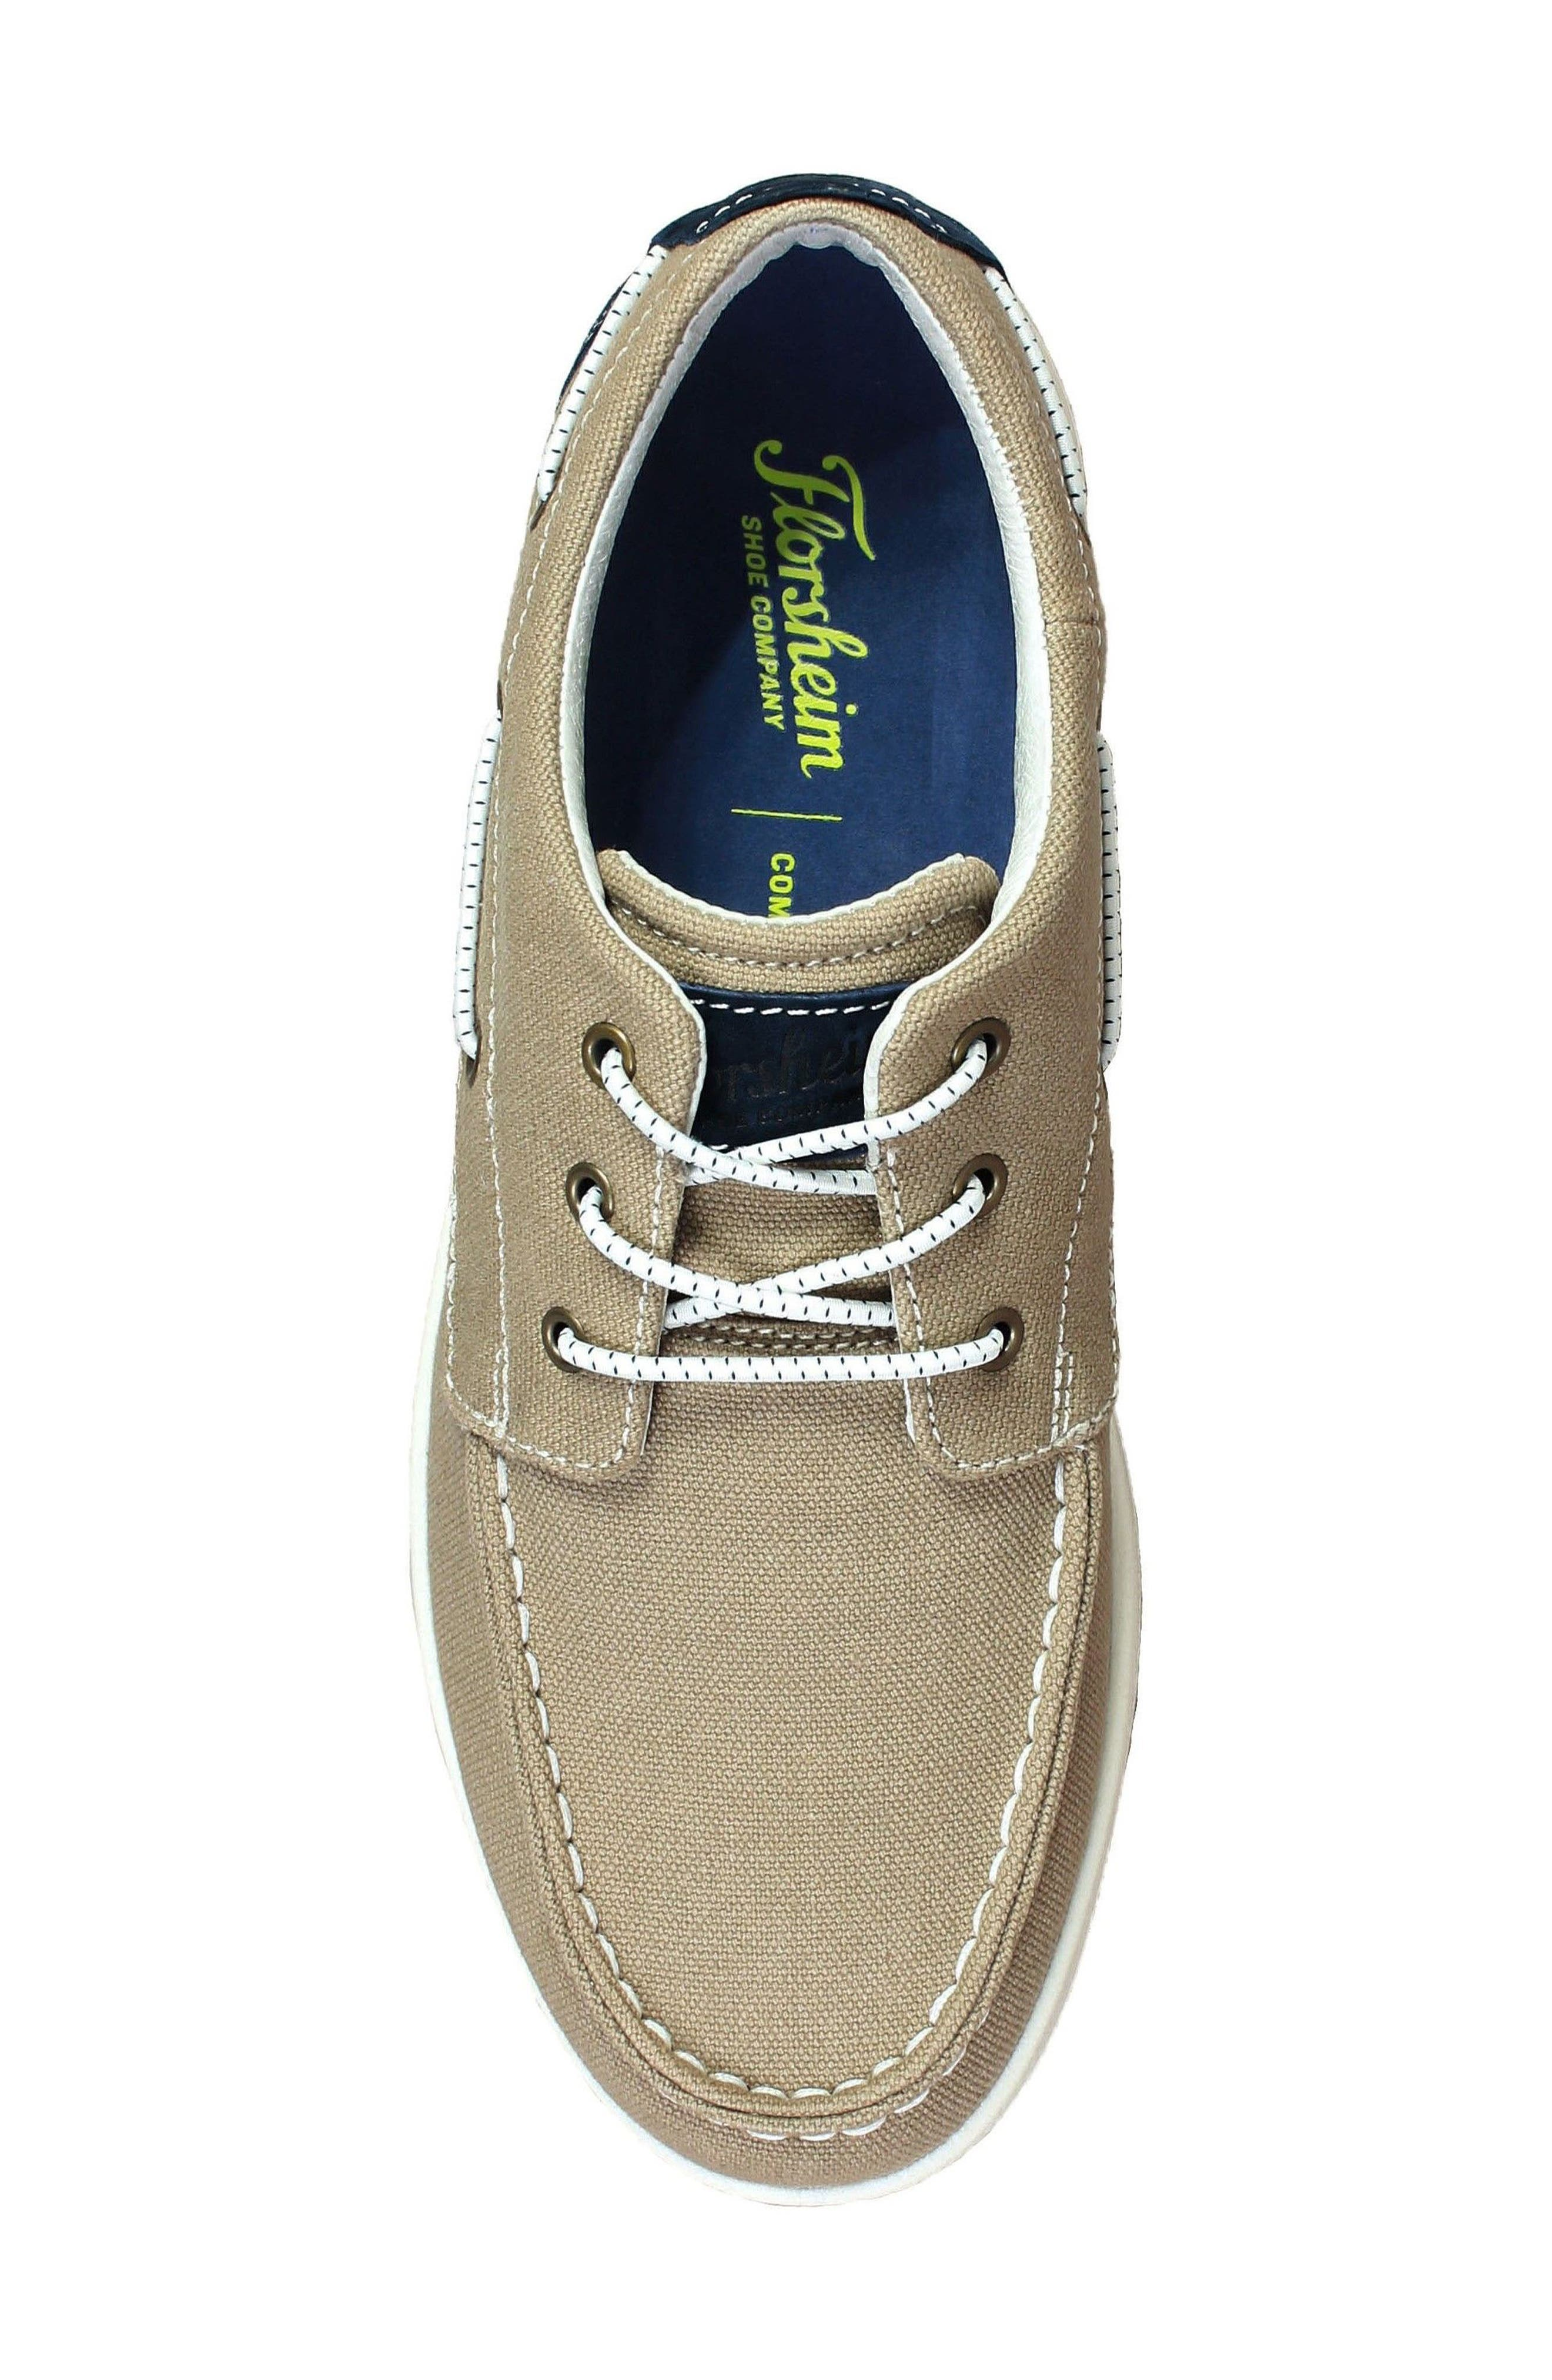 FLORSHEIM,                             Edge Boat Shoe,                             Alternate thumbnail 5, color,                             KHAKI CANVAS